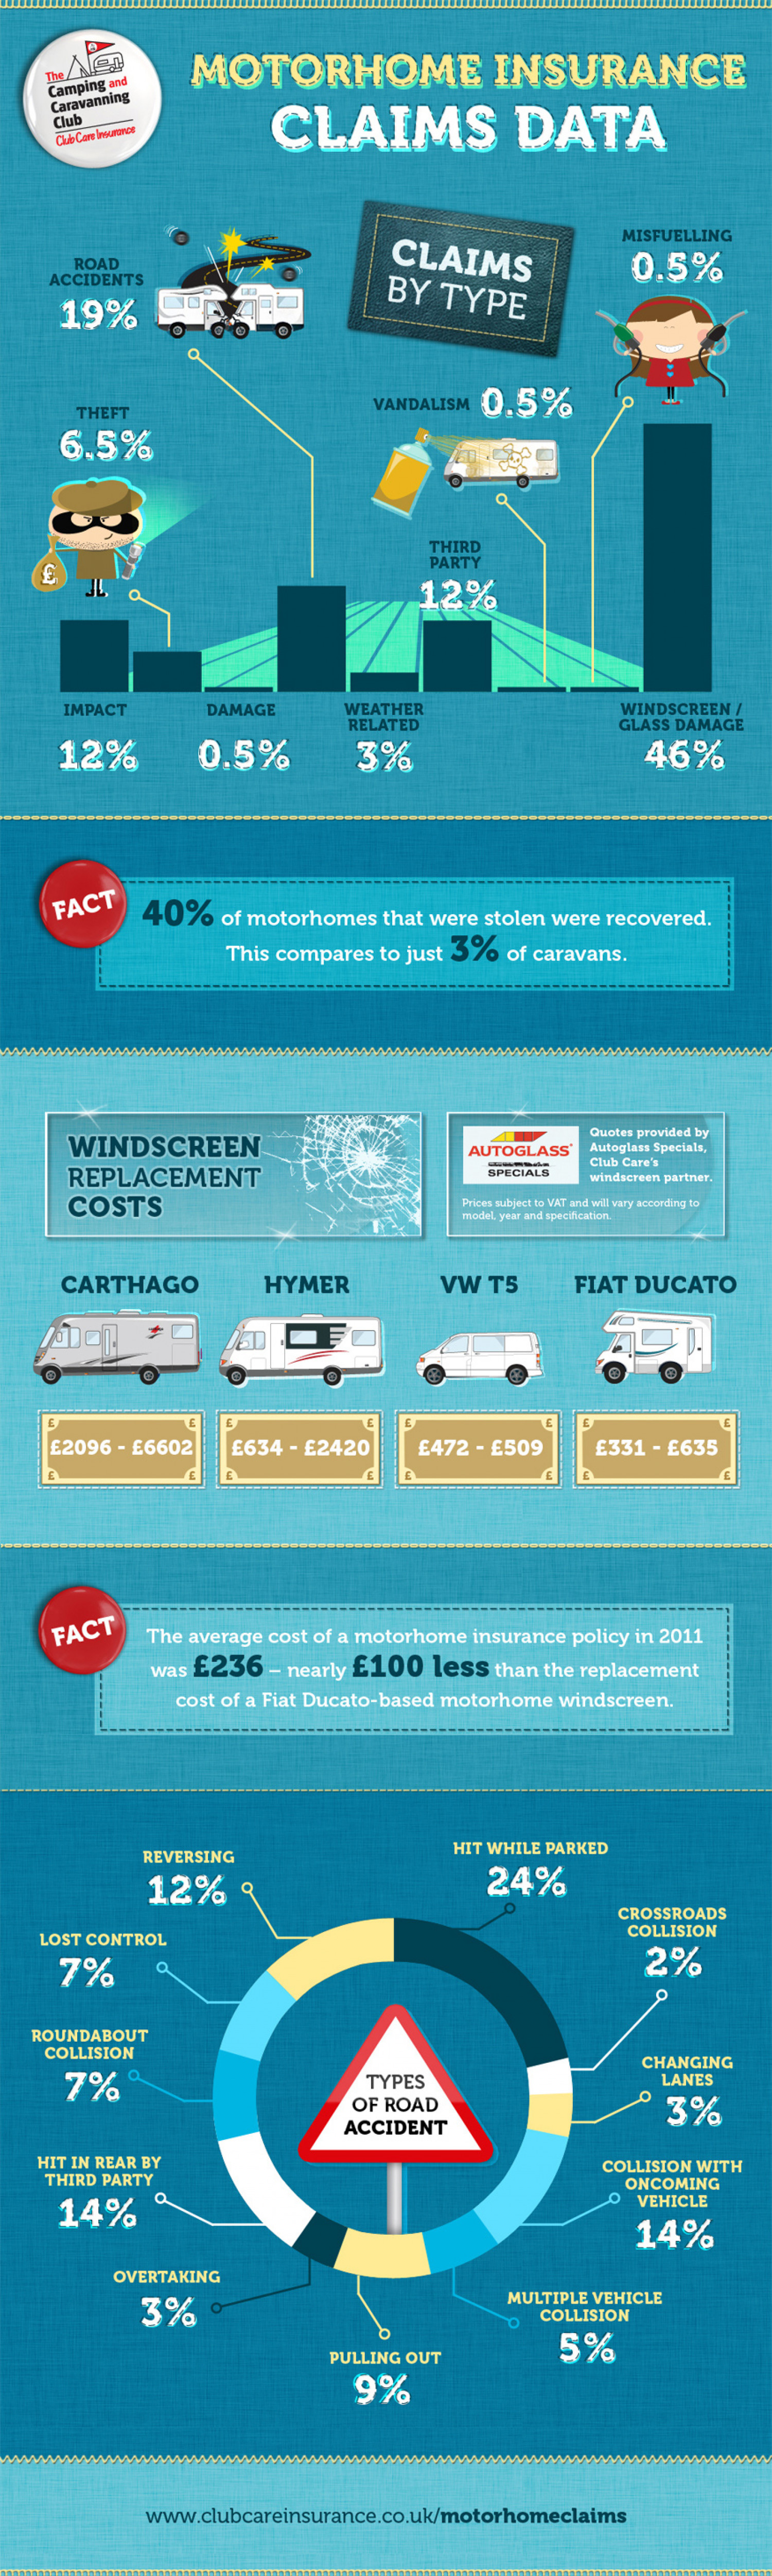 Motorhome insurance claims: common reasons why people claim Infographic